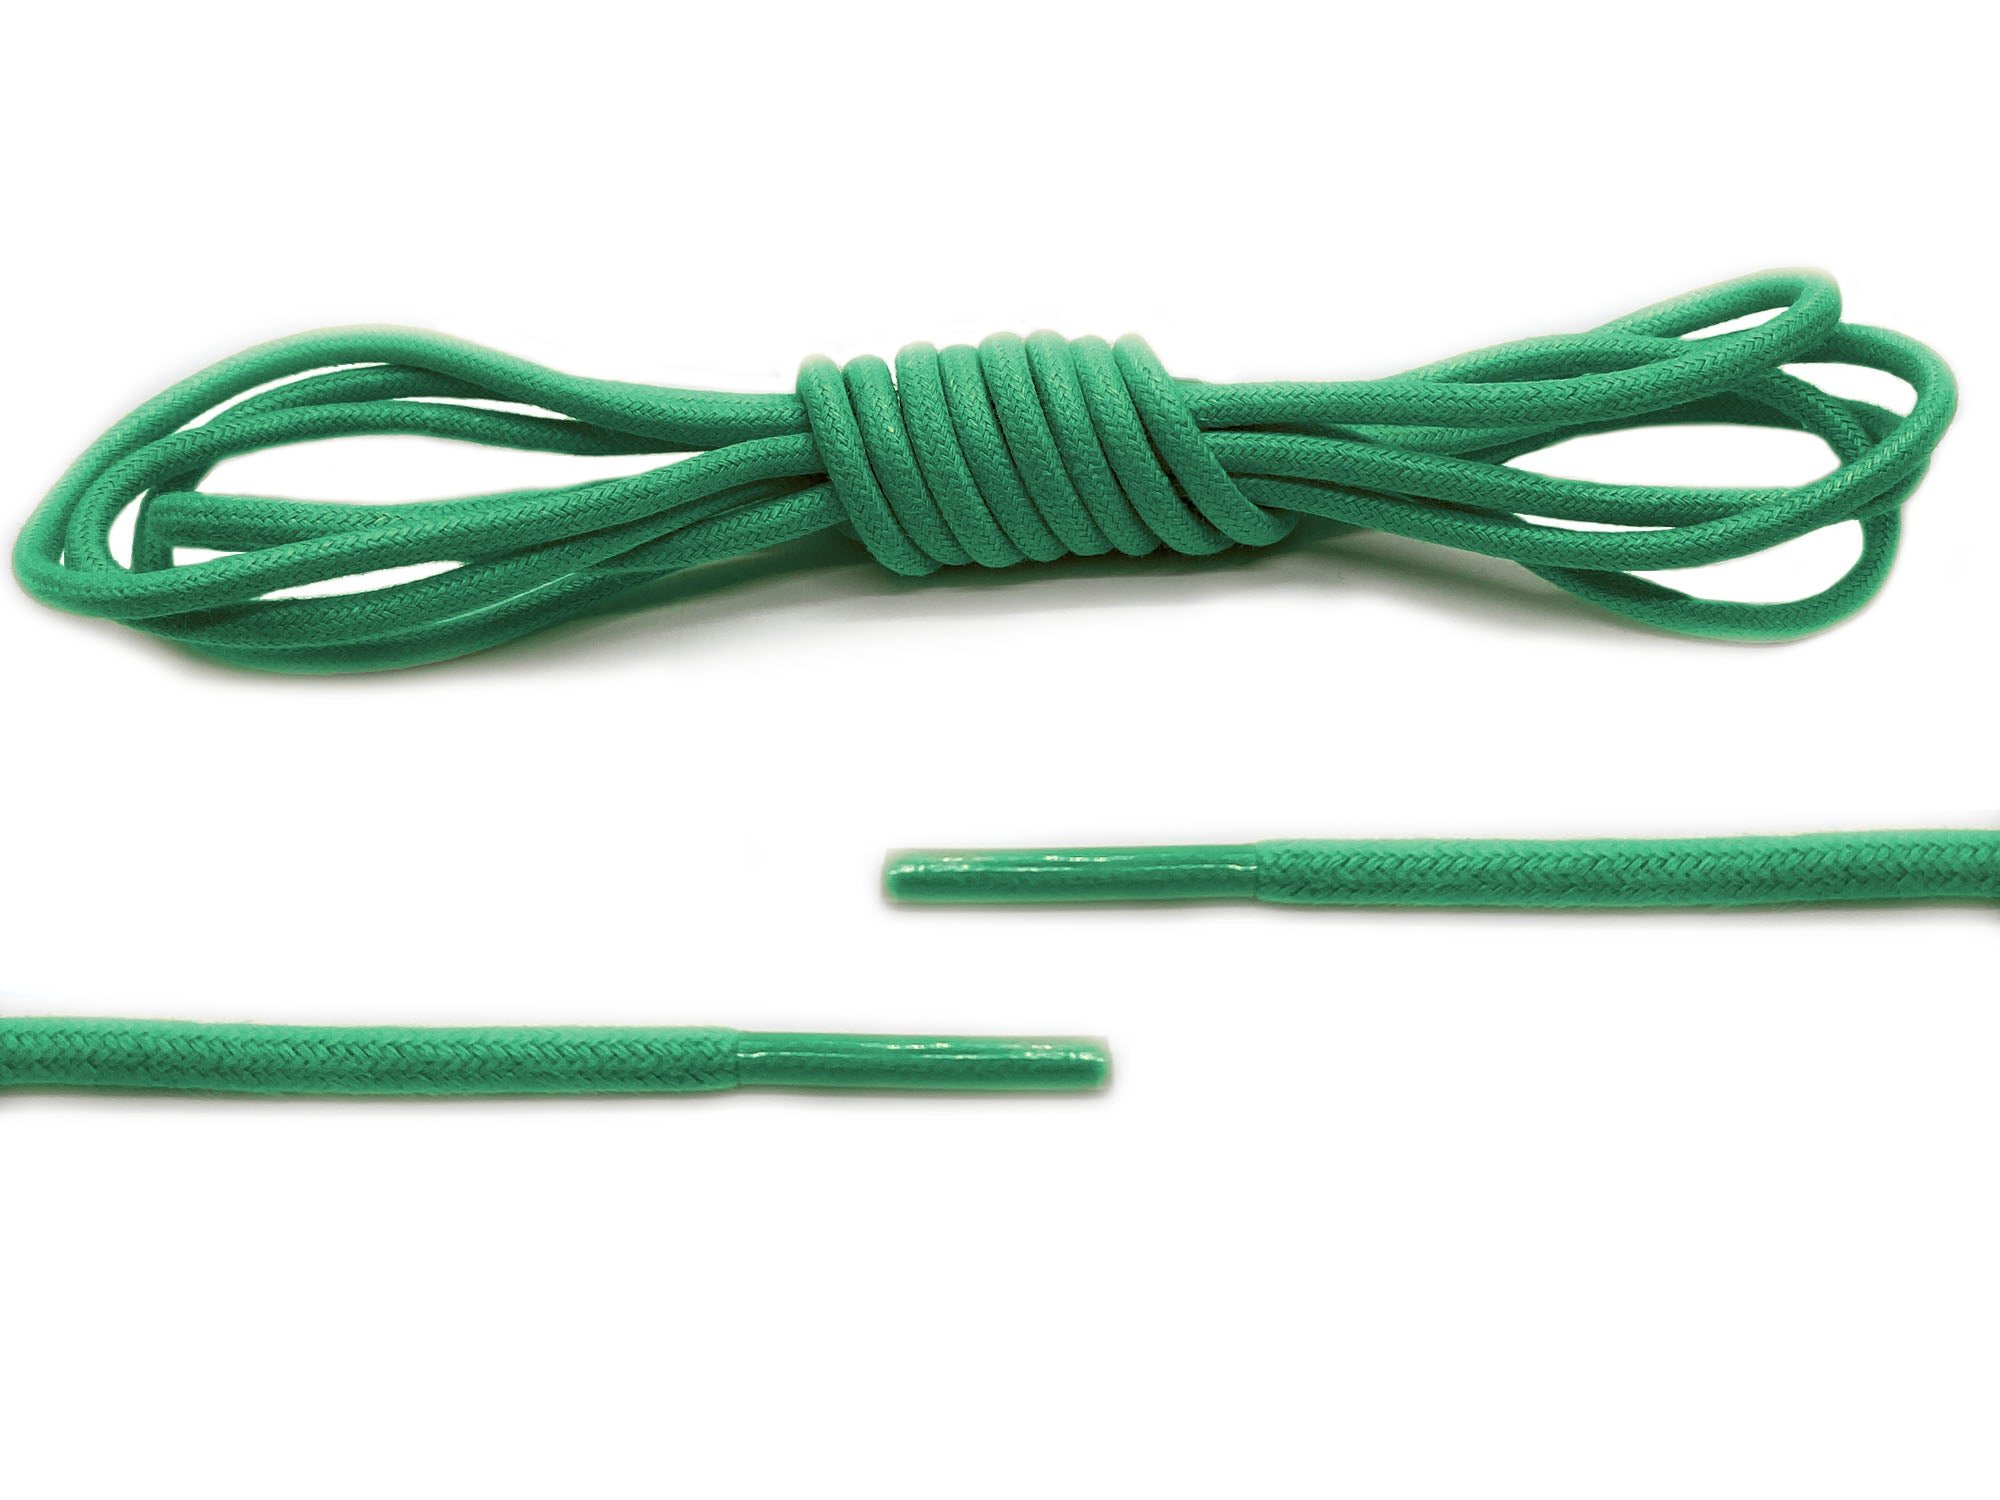 Green Round Waxed Laces